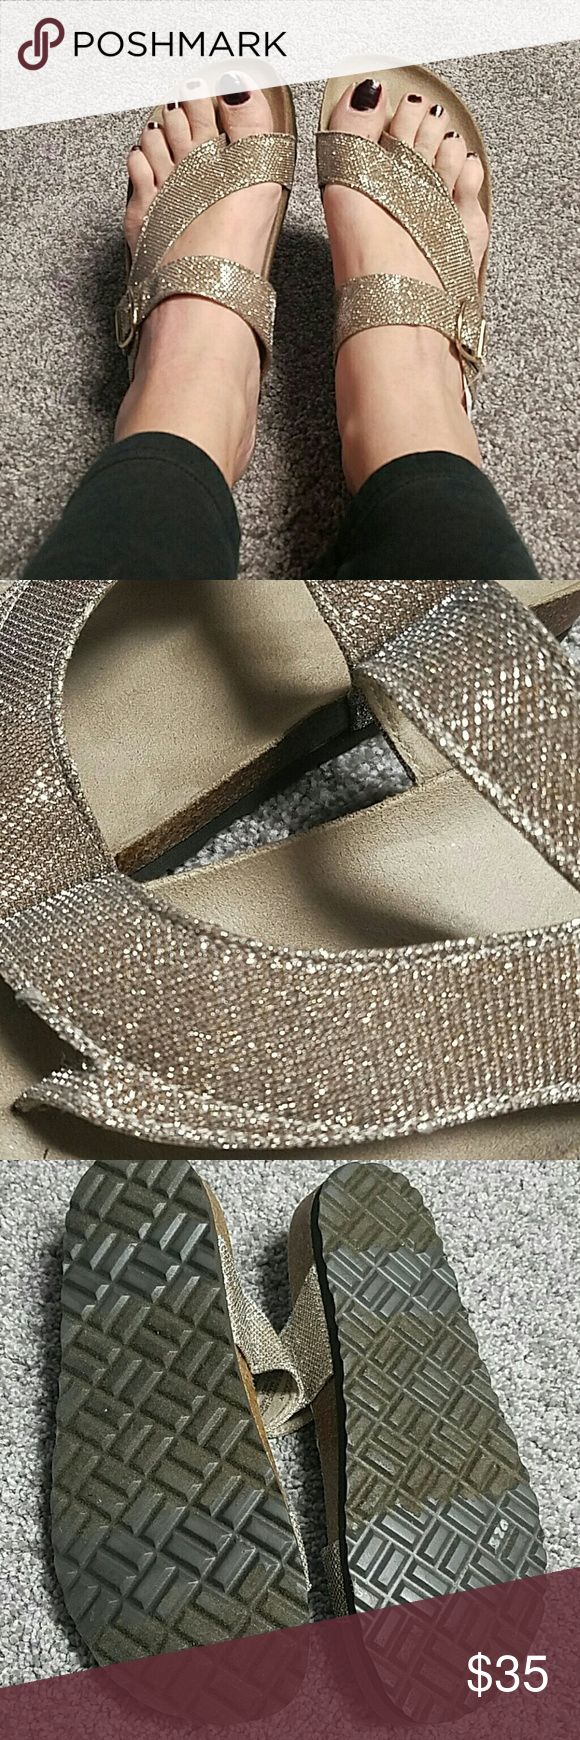 NWT White Mountain Sparkle Loafer Sandles 9 Please excuse my chipped nail Polish in pics. These are brand new never worn. Beautiful & casual. NO TRADES PLEASE DON'T ASK ME! white mountain  Shoes Sandals